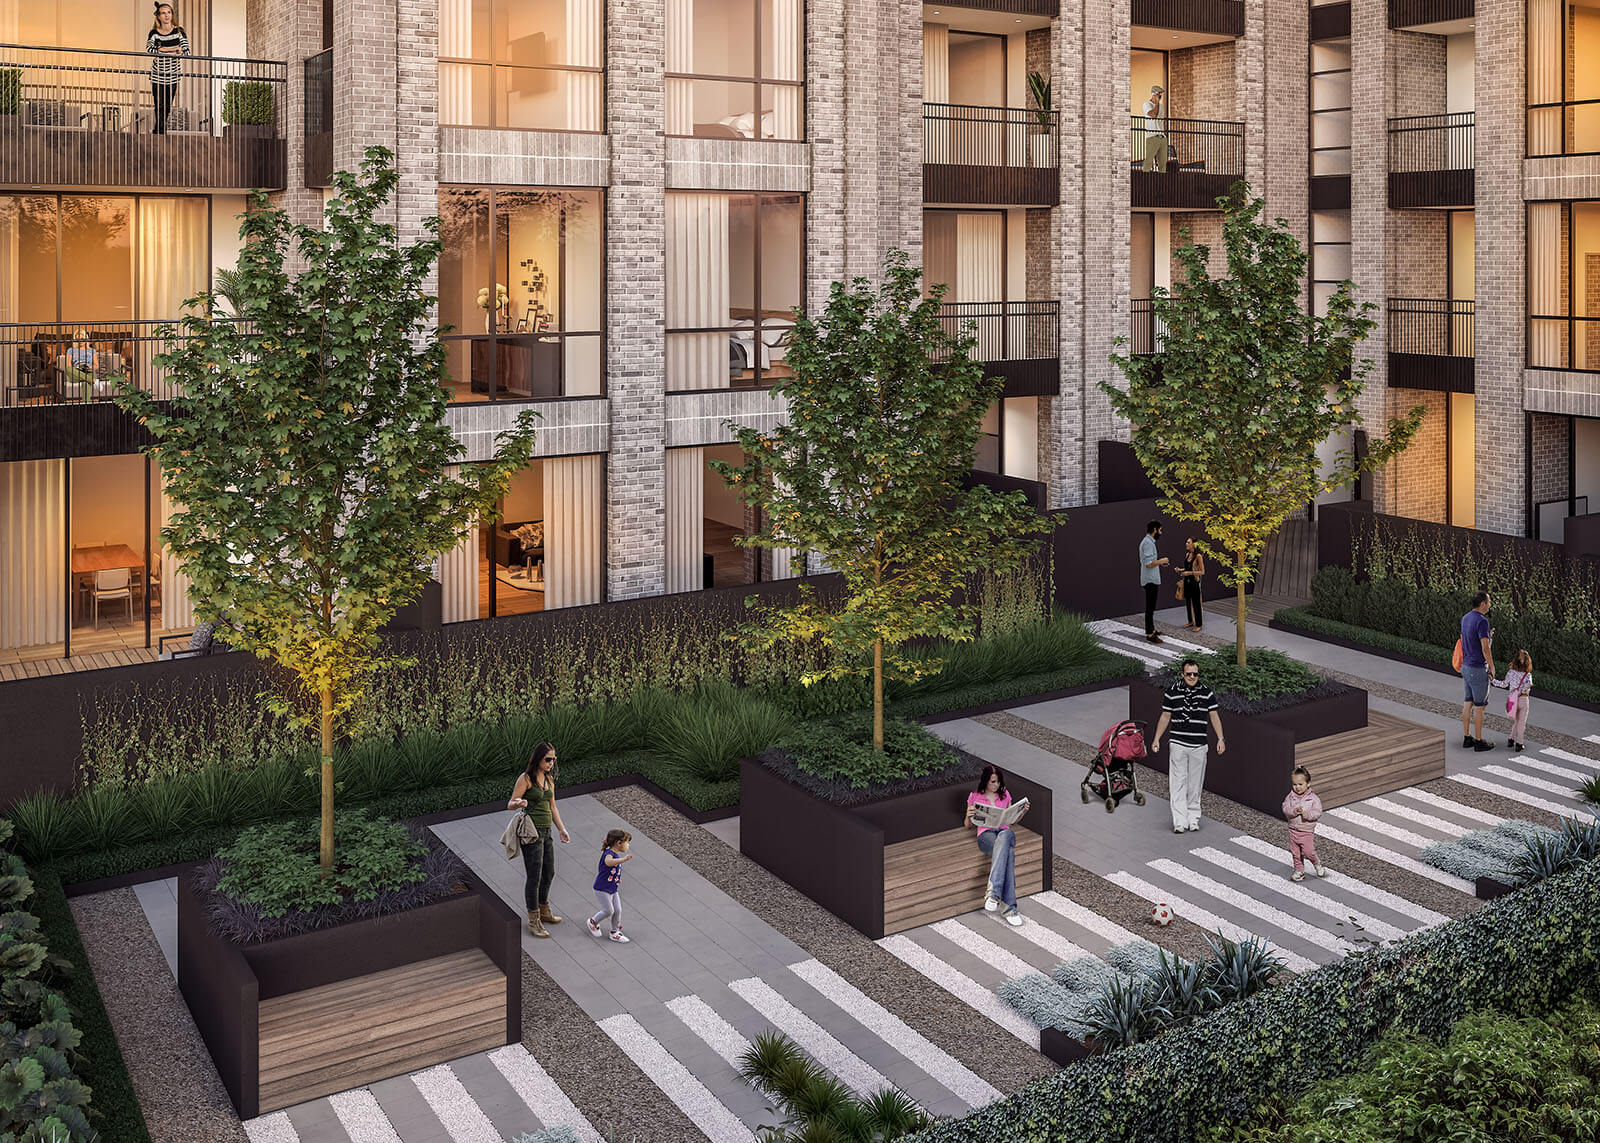 The shared courtyard space